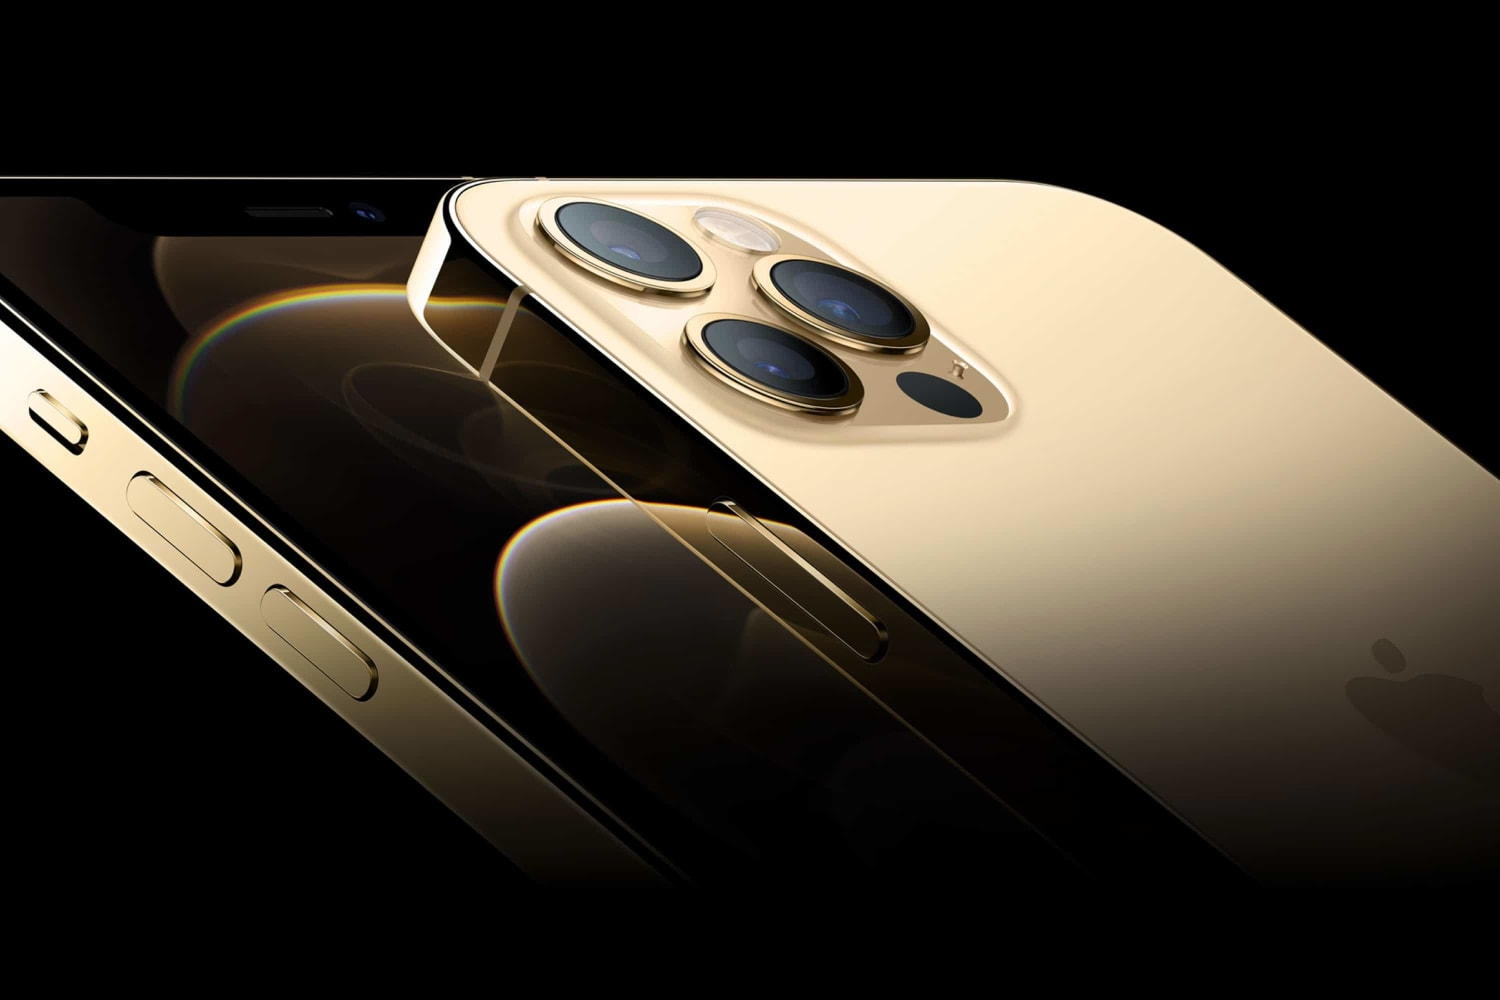 apple-may-source-from-samsung-for-2022-iphone-camera-20201207-1